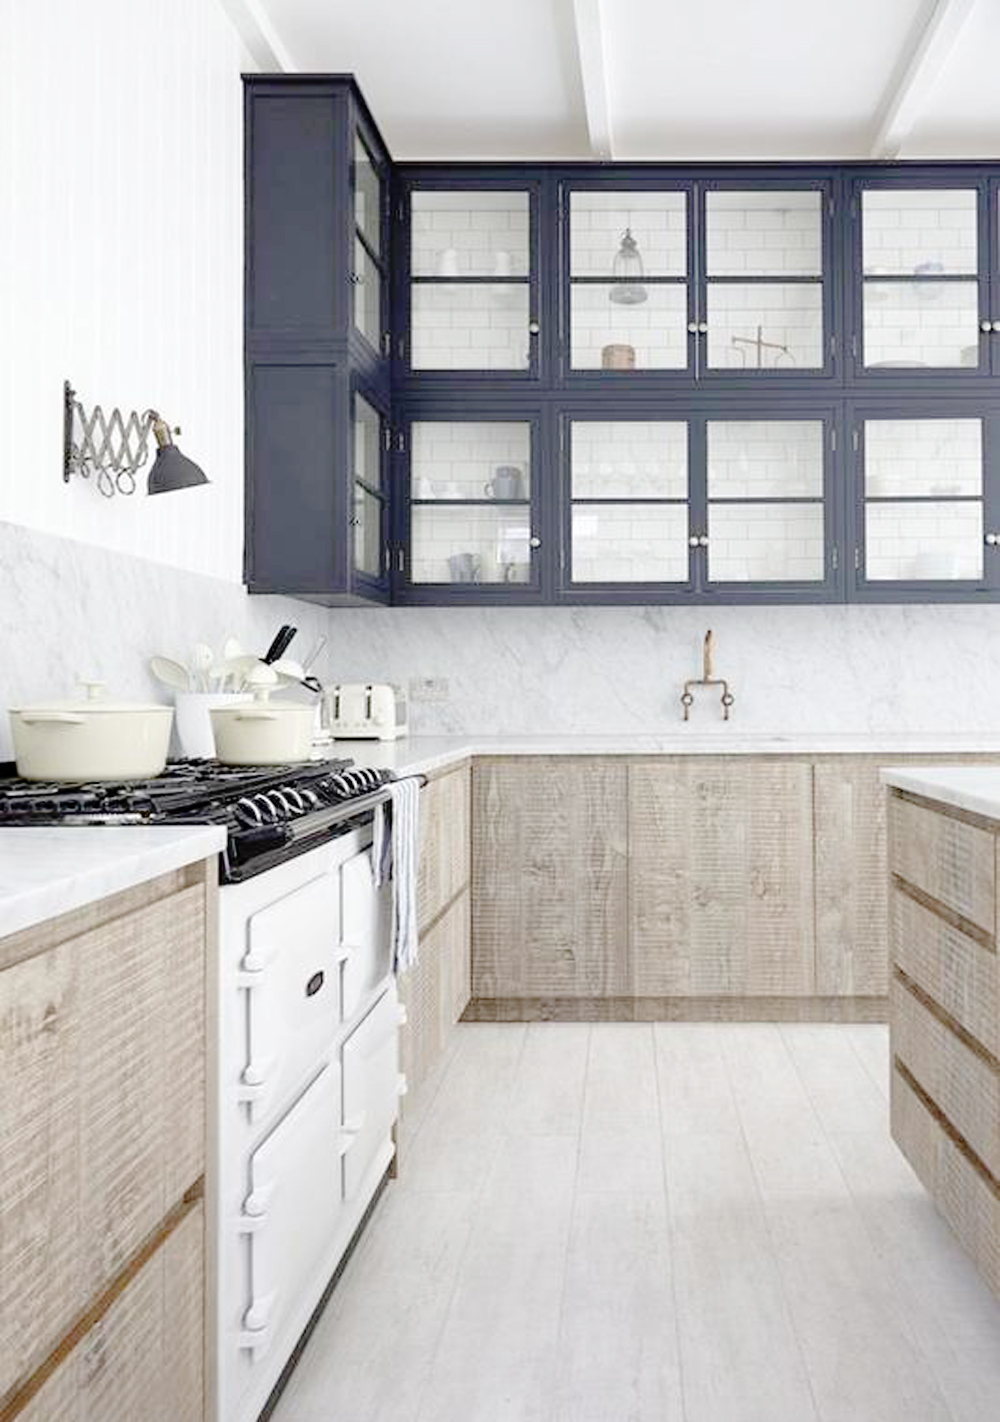 twotoned4 - THE TWO TONE KITCHEN by popular home design blogger E. INTERIORS